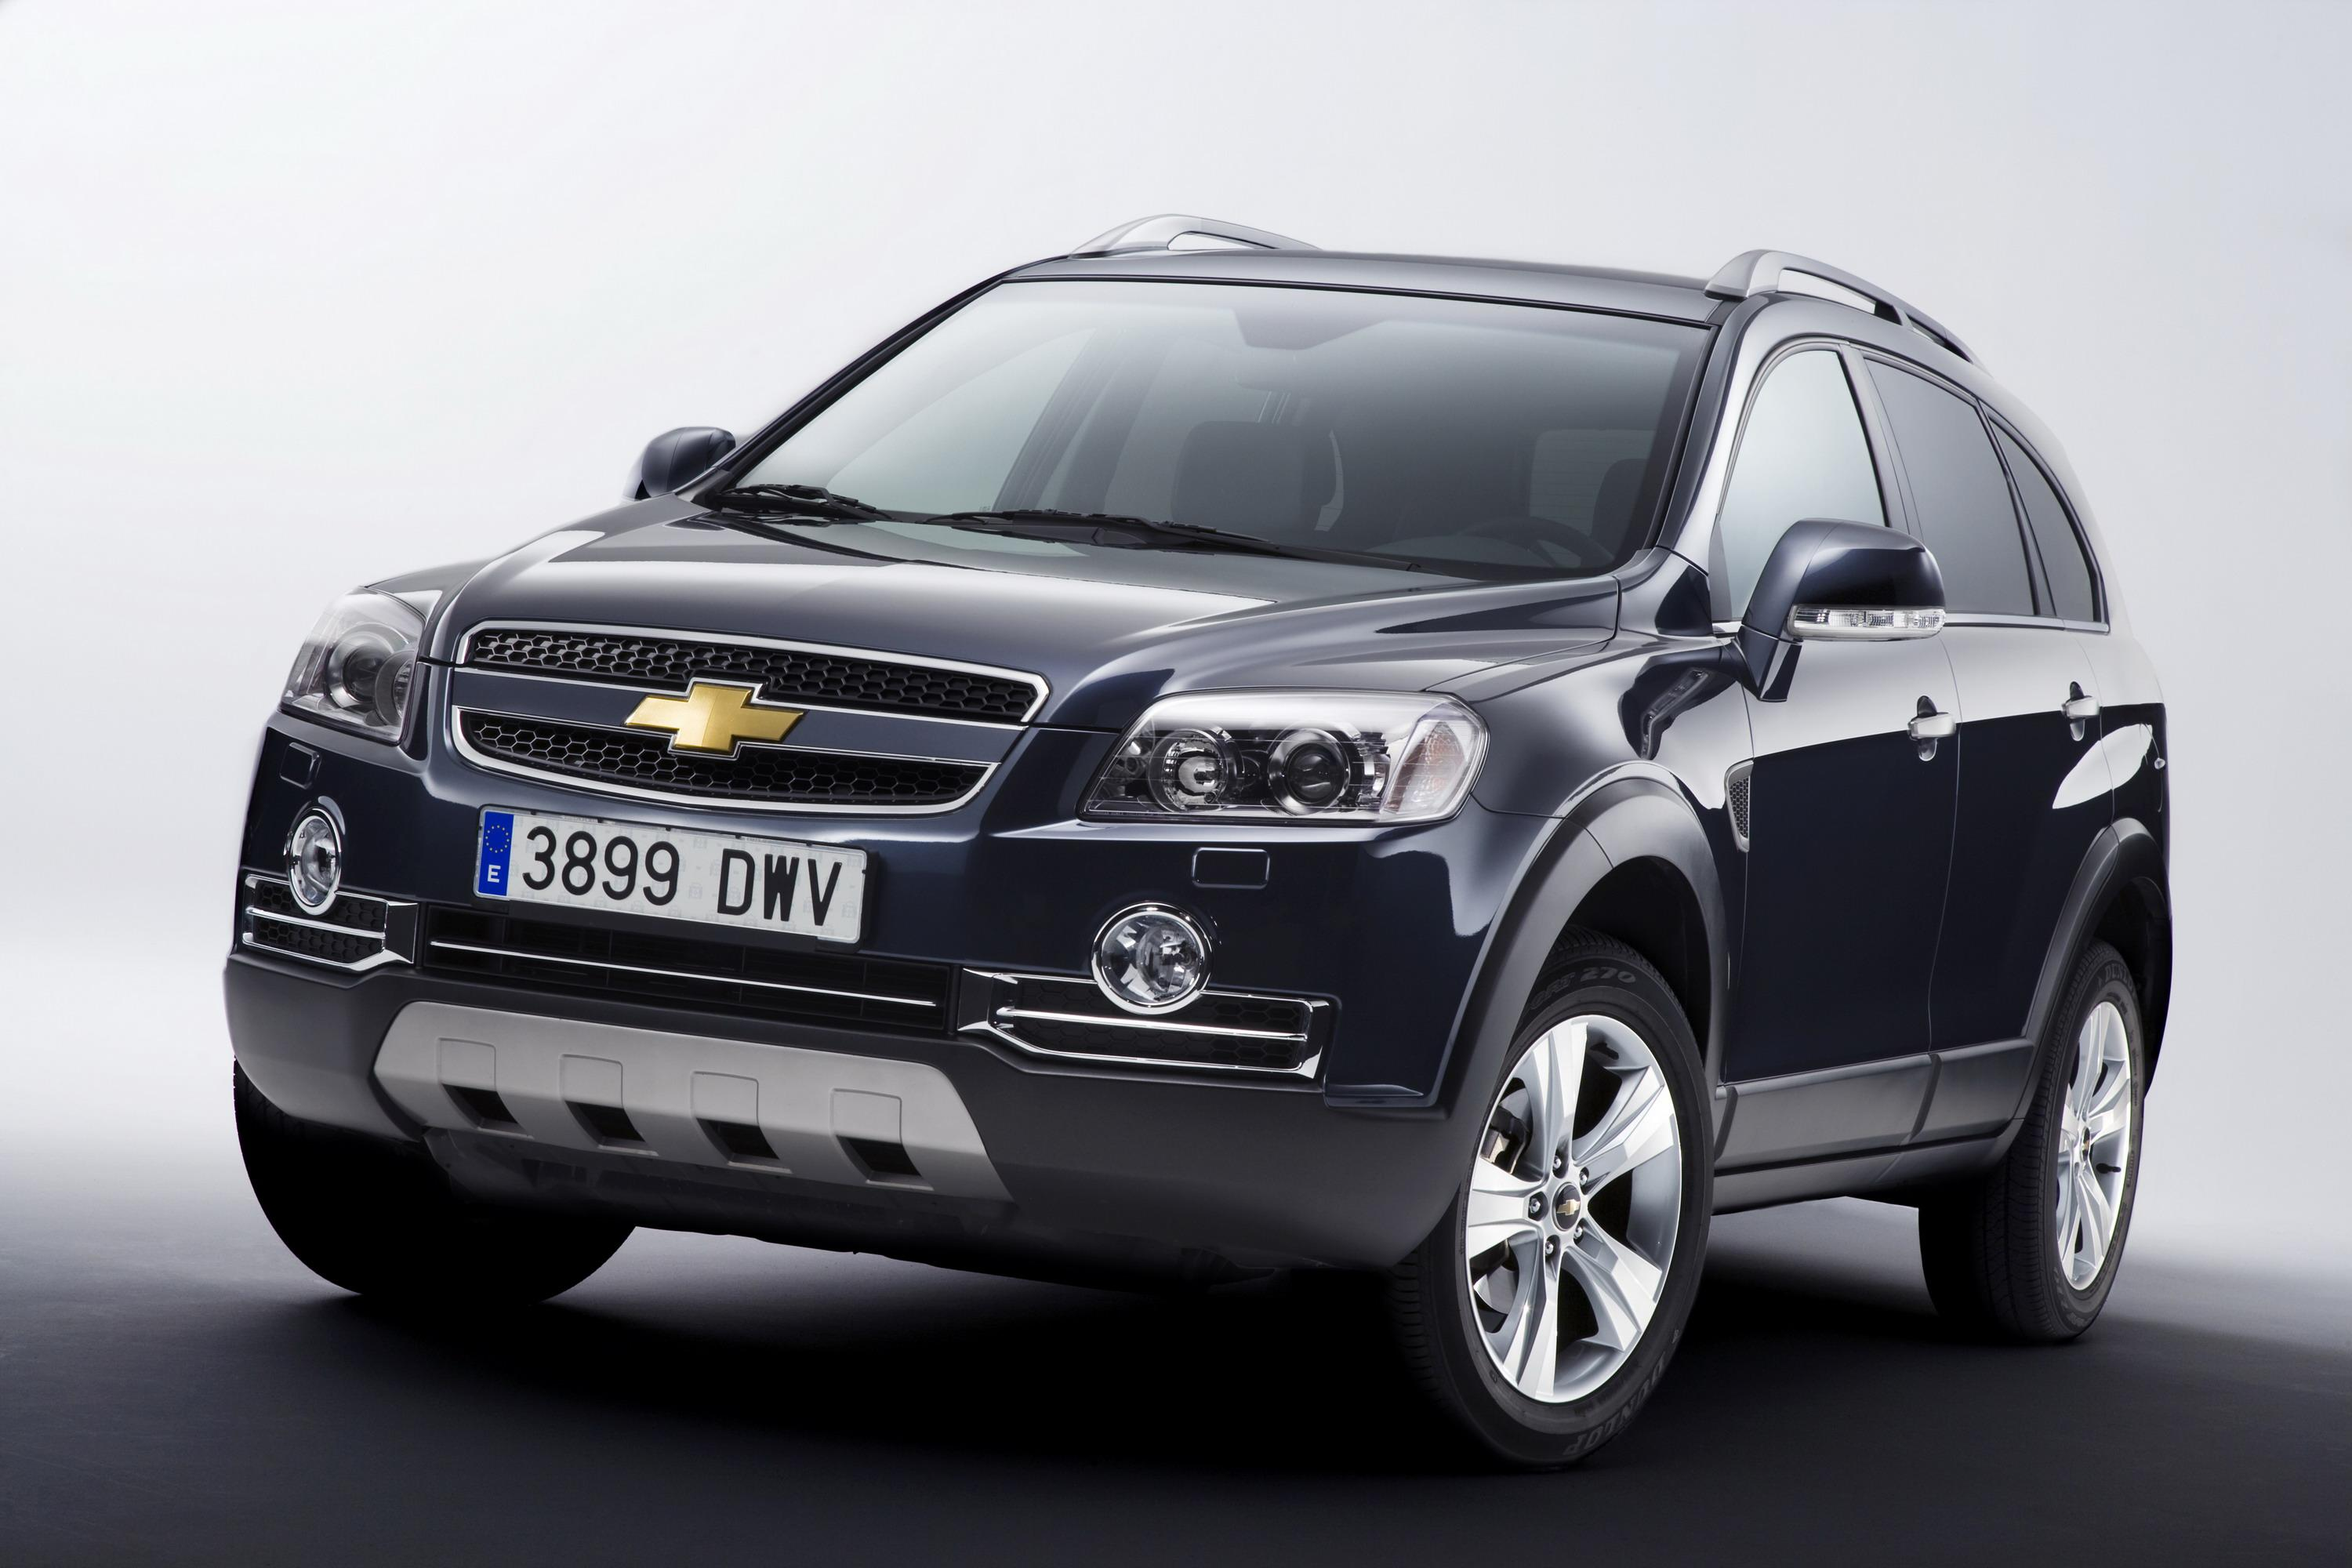 Jeep Models 2015 >> 2008 Chevrolet Captiva Sport | Top Speed